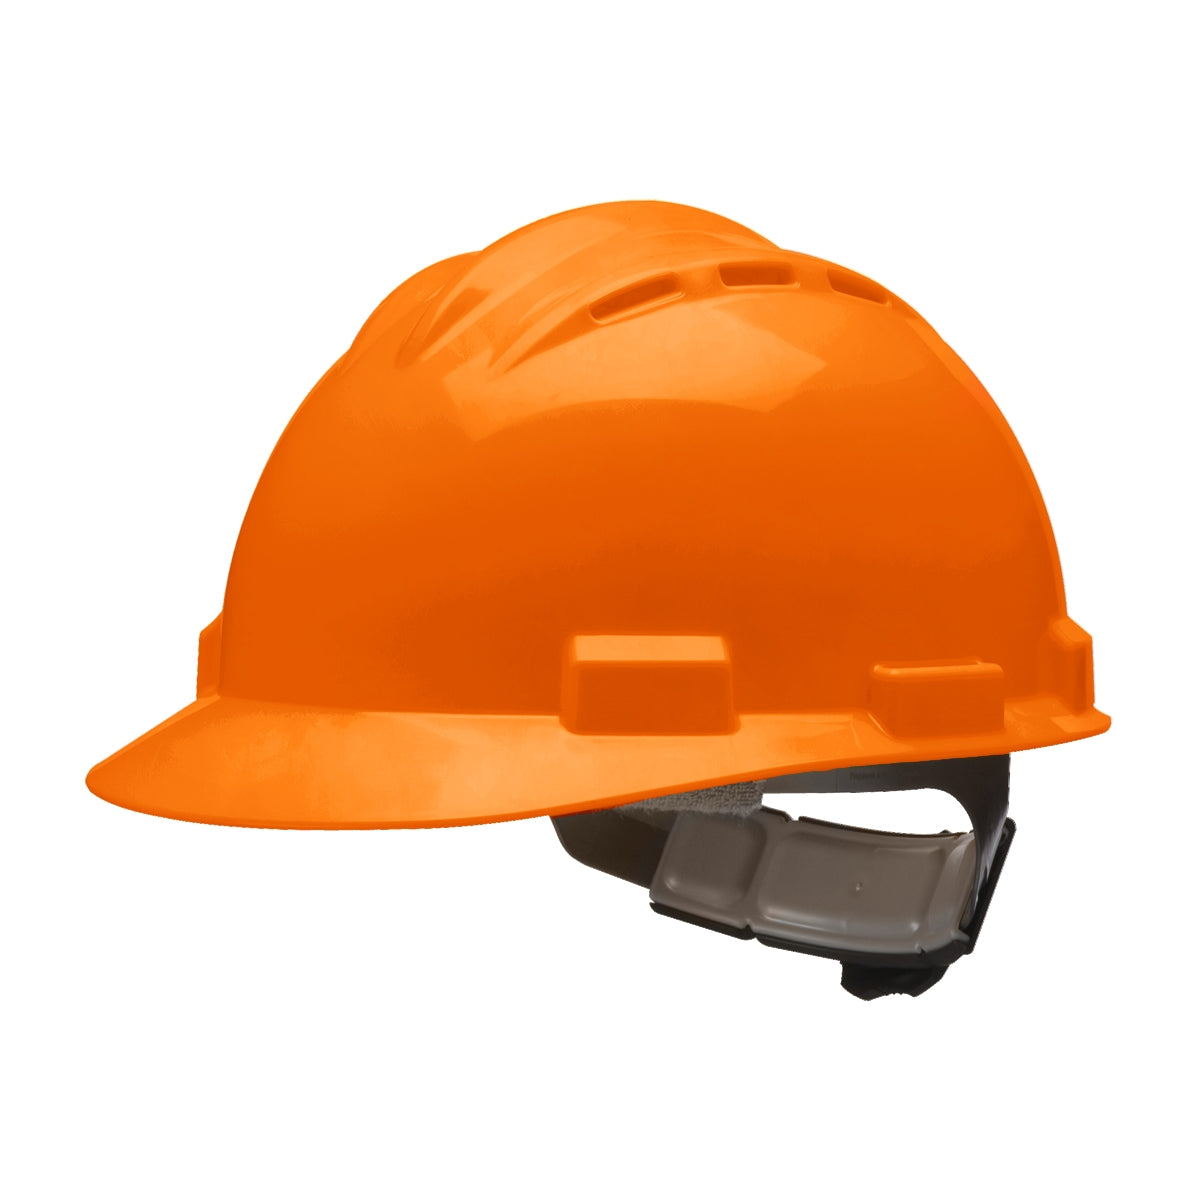 BULLARD Standard Vented Hard Hat - Ratchet Suspension - Orange